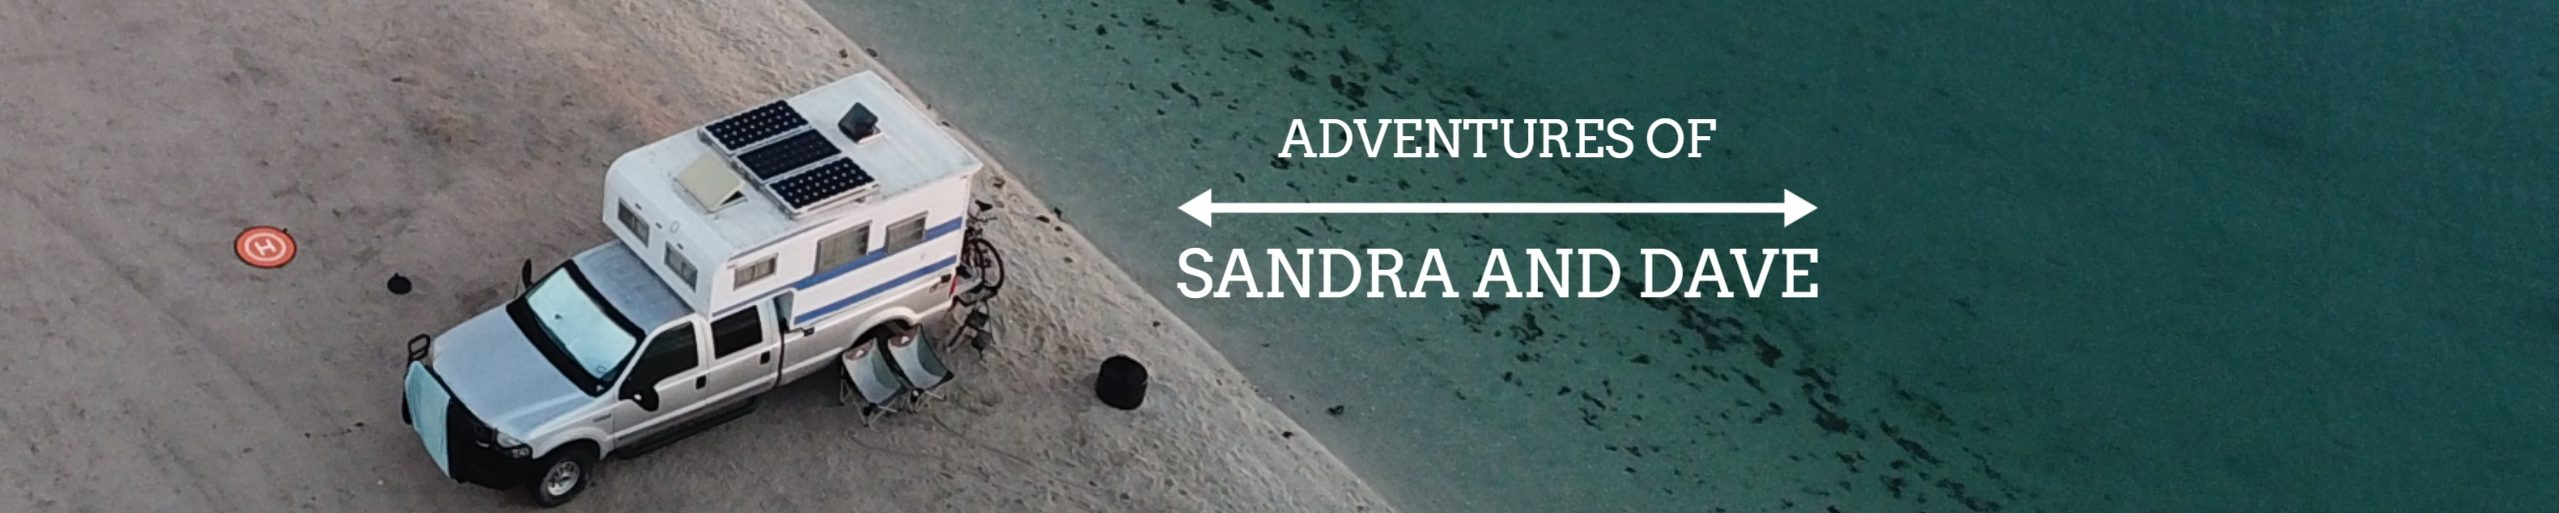 Adventures of Sandra and Dave